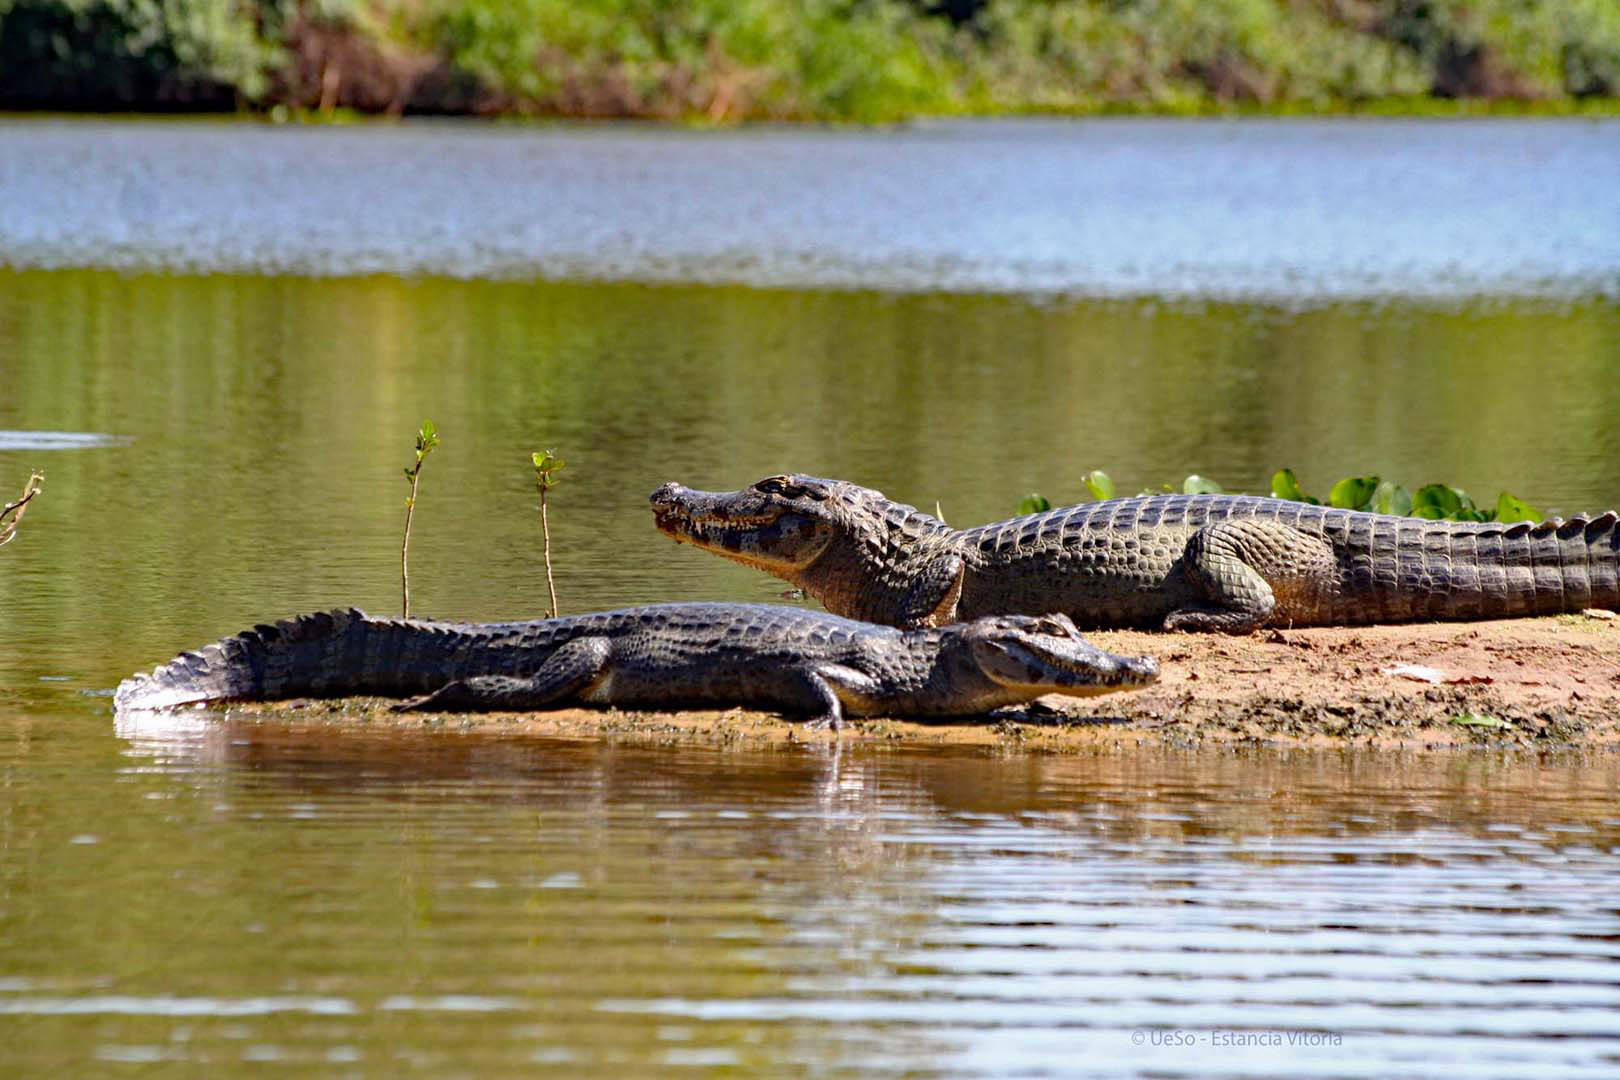 Caimans at the river